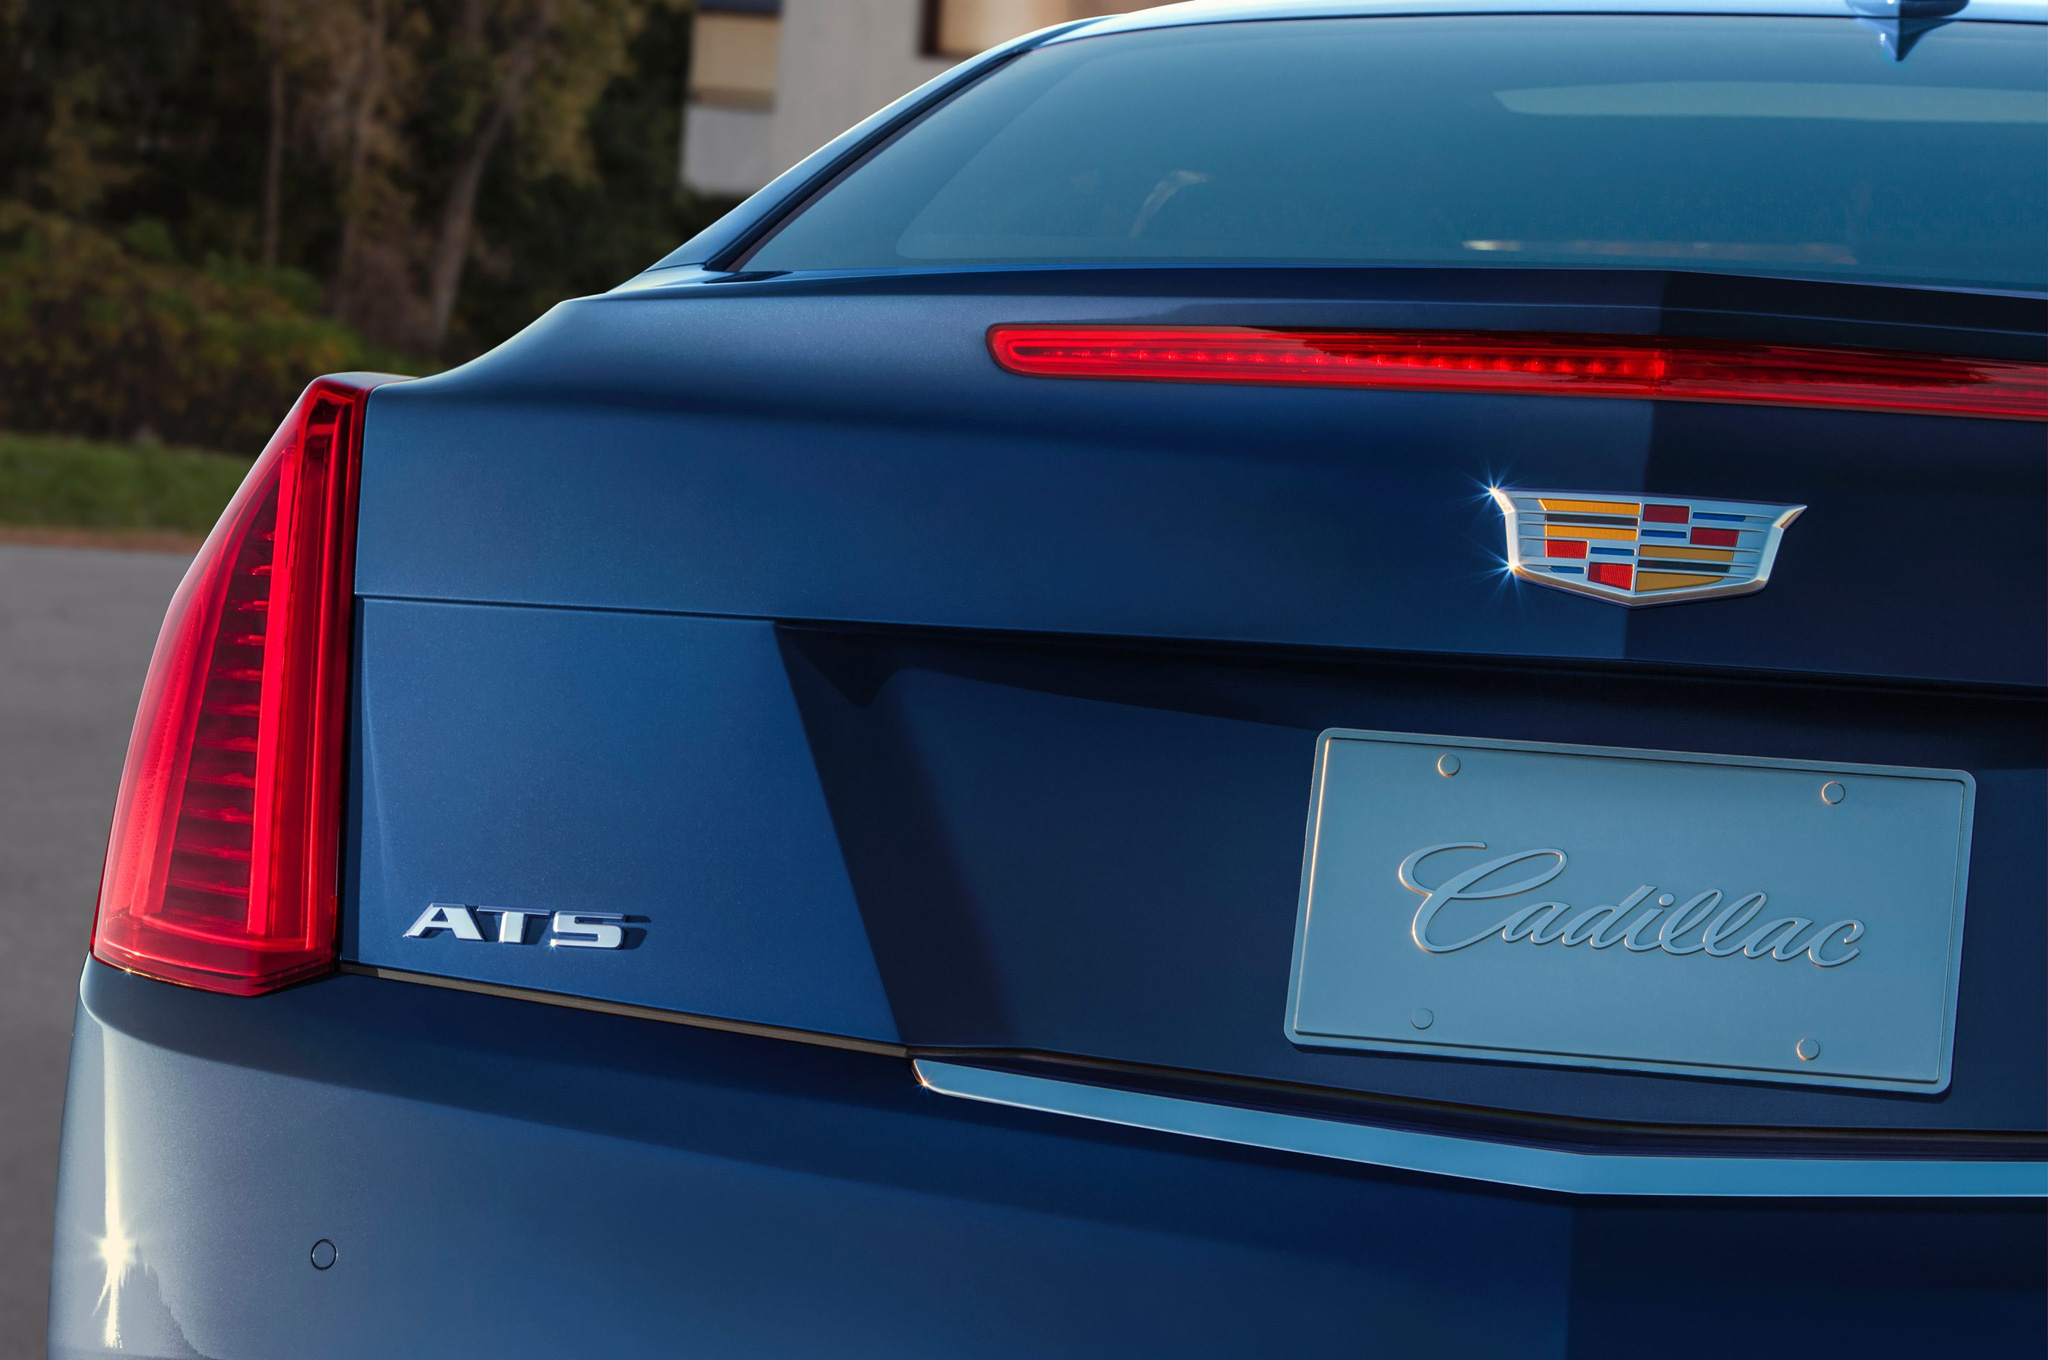 2015 Cadillac ATS Coupe Rear Lamp Close-Up